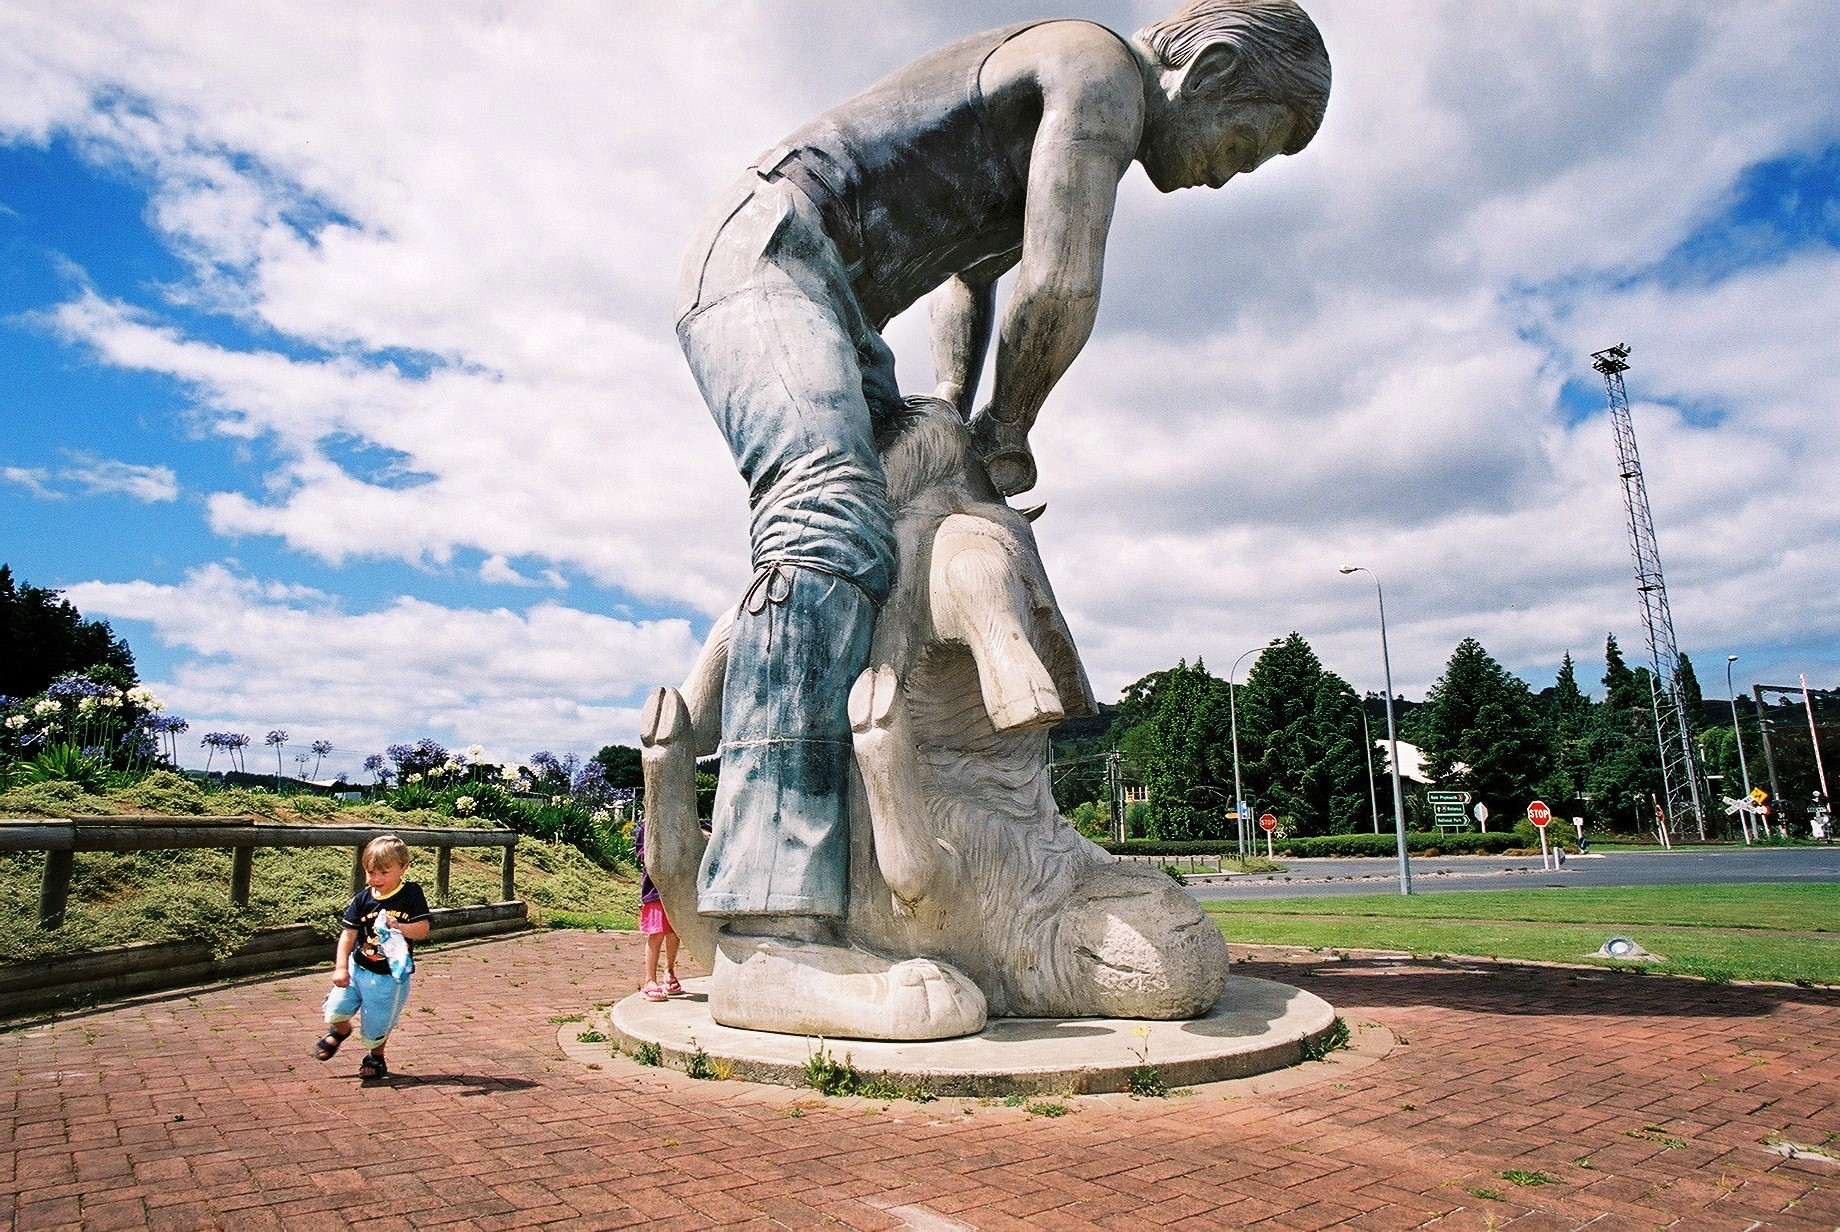 Shearing capital of NZ, Te Kuiti, New Zealand